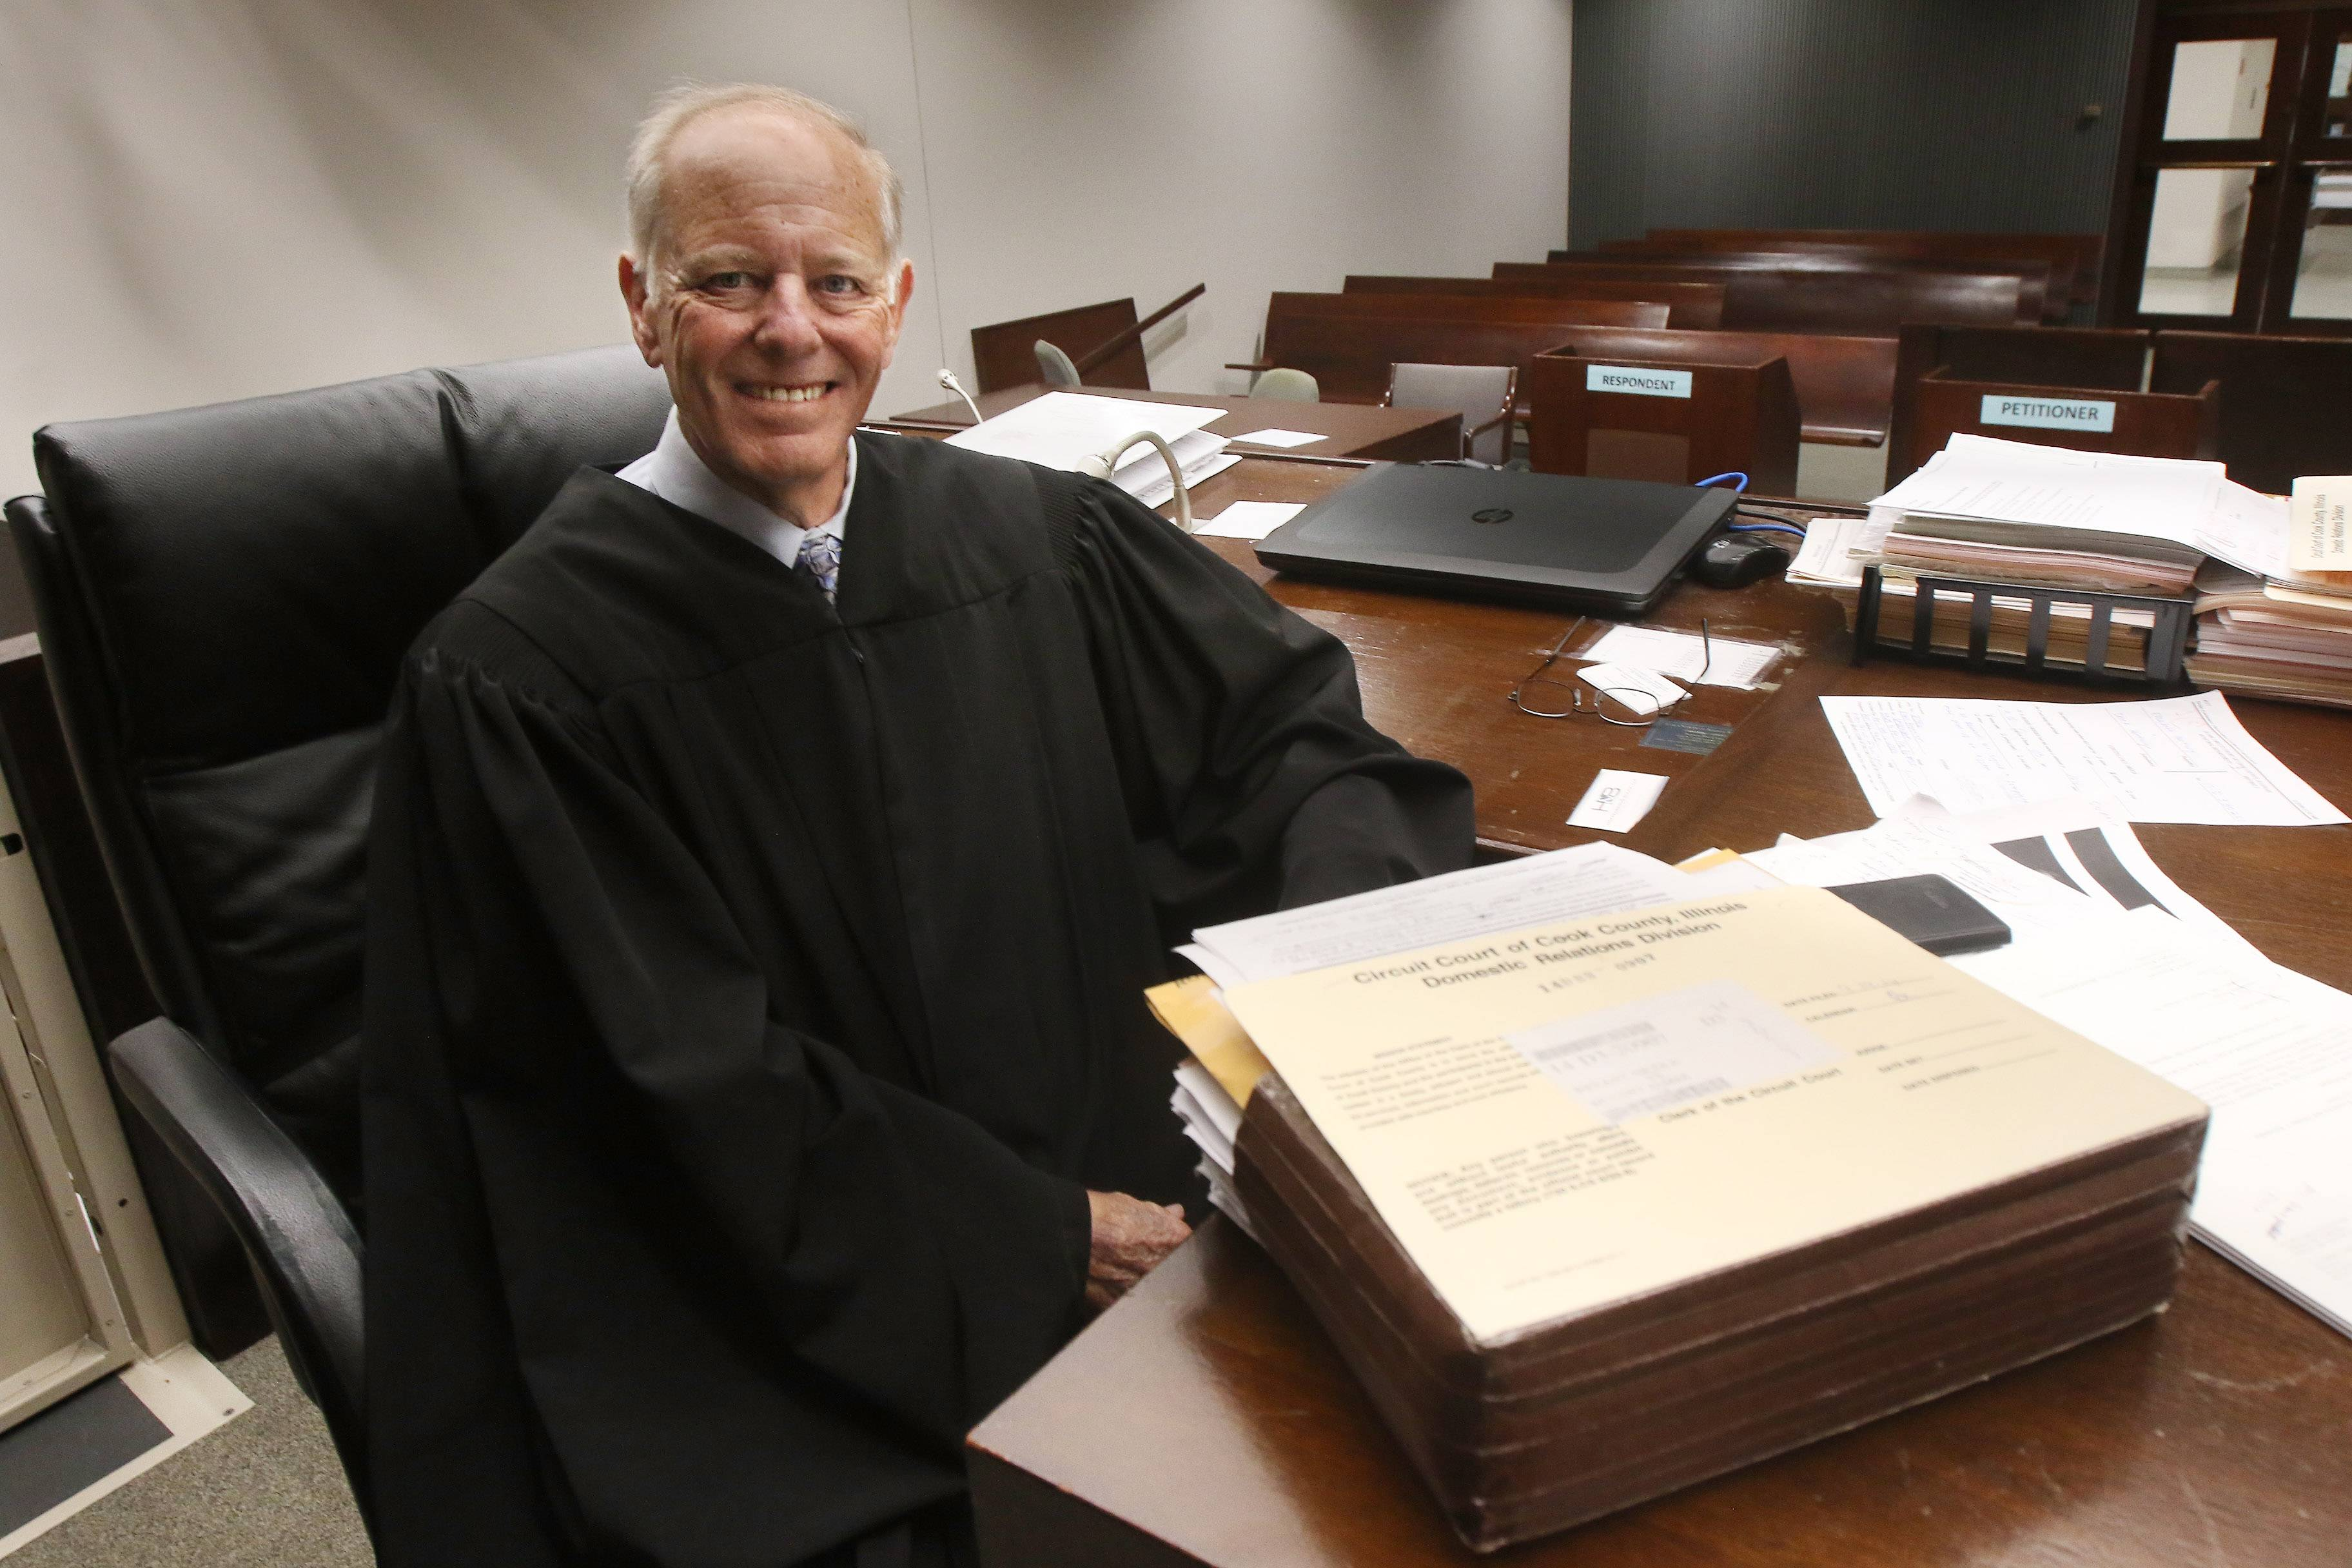 After more than 40 years as a lawyer and more than 17 as a jurist, Cook County Judge Hyman Riebman is stepping away from the bench.